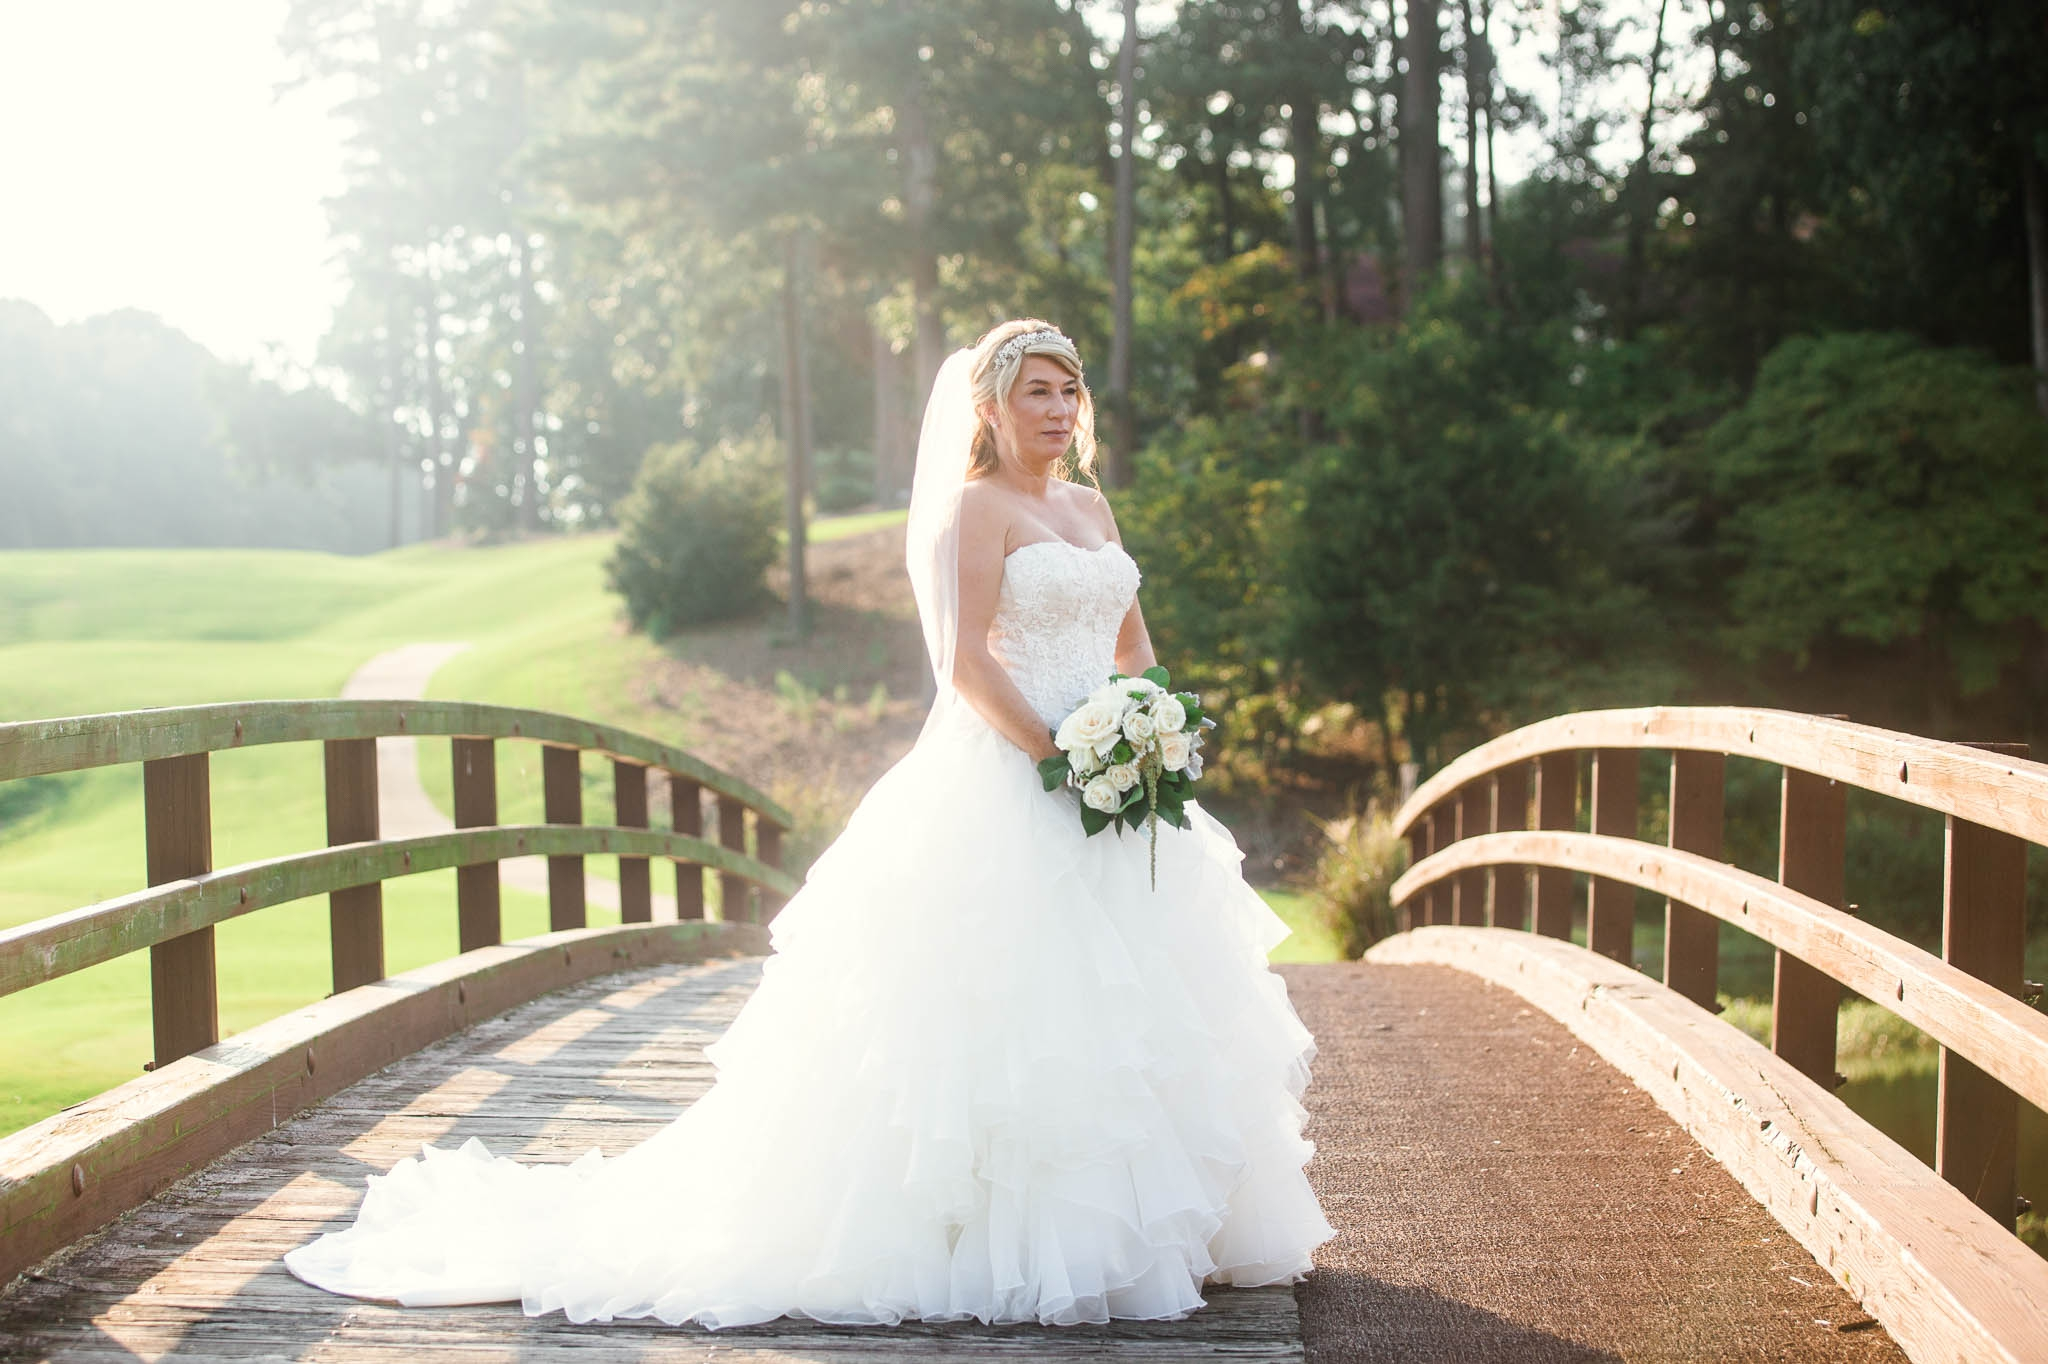 Bridal Portrait - Dona + Doug - MacGregor Downs Country Club in Cary, NC - Raleigh Wedding Photographer